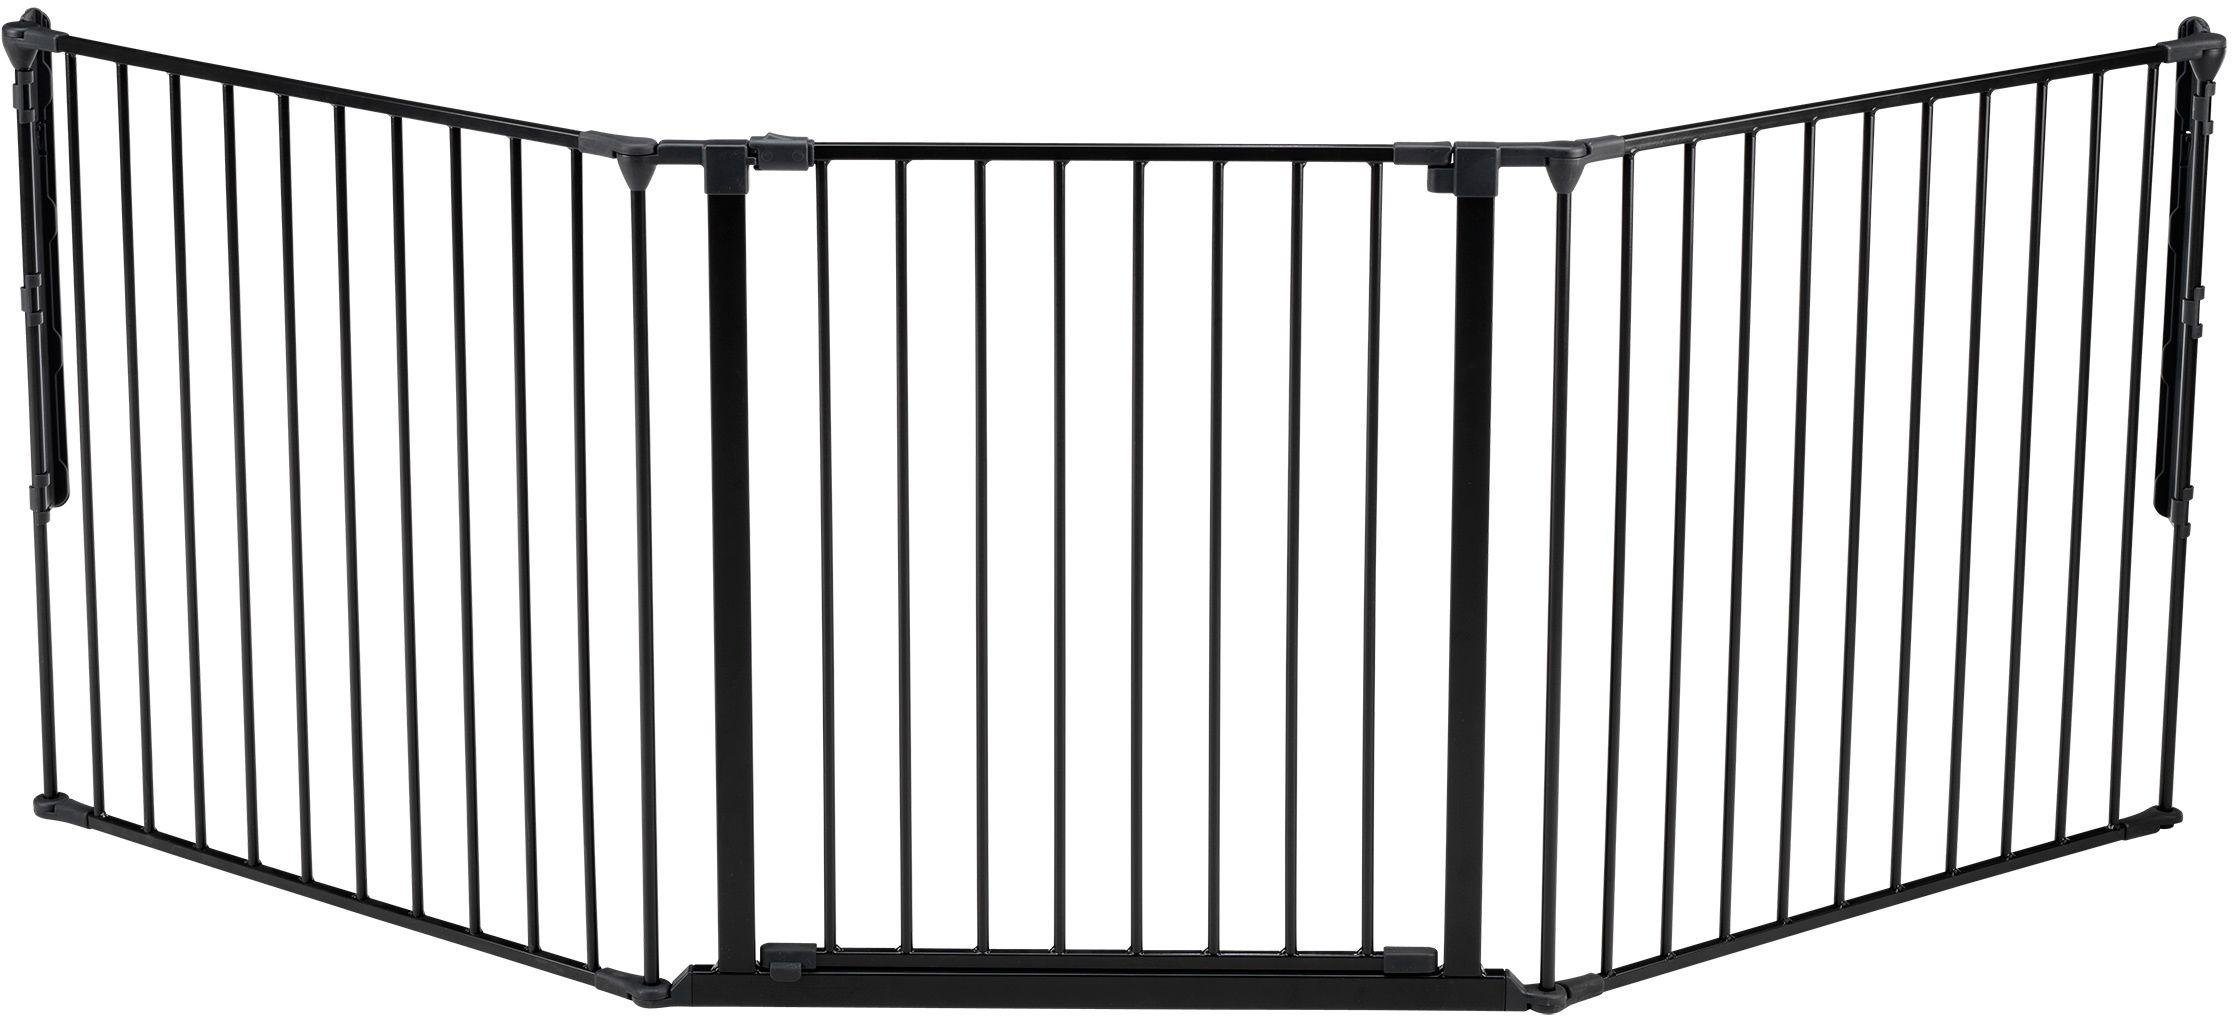 Image of BabyDan - Large Configure Gate - Black